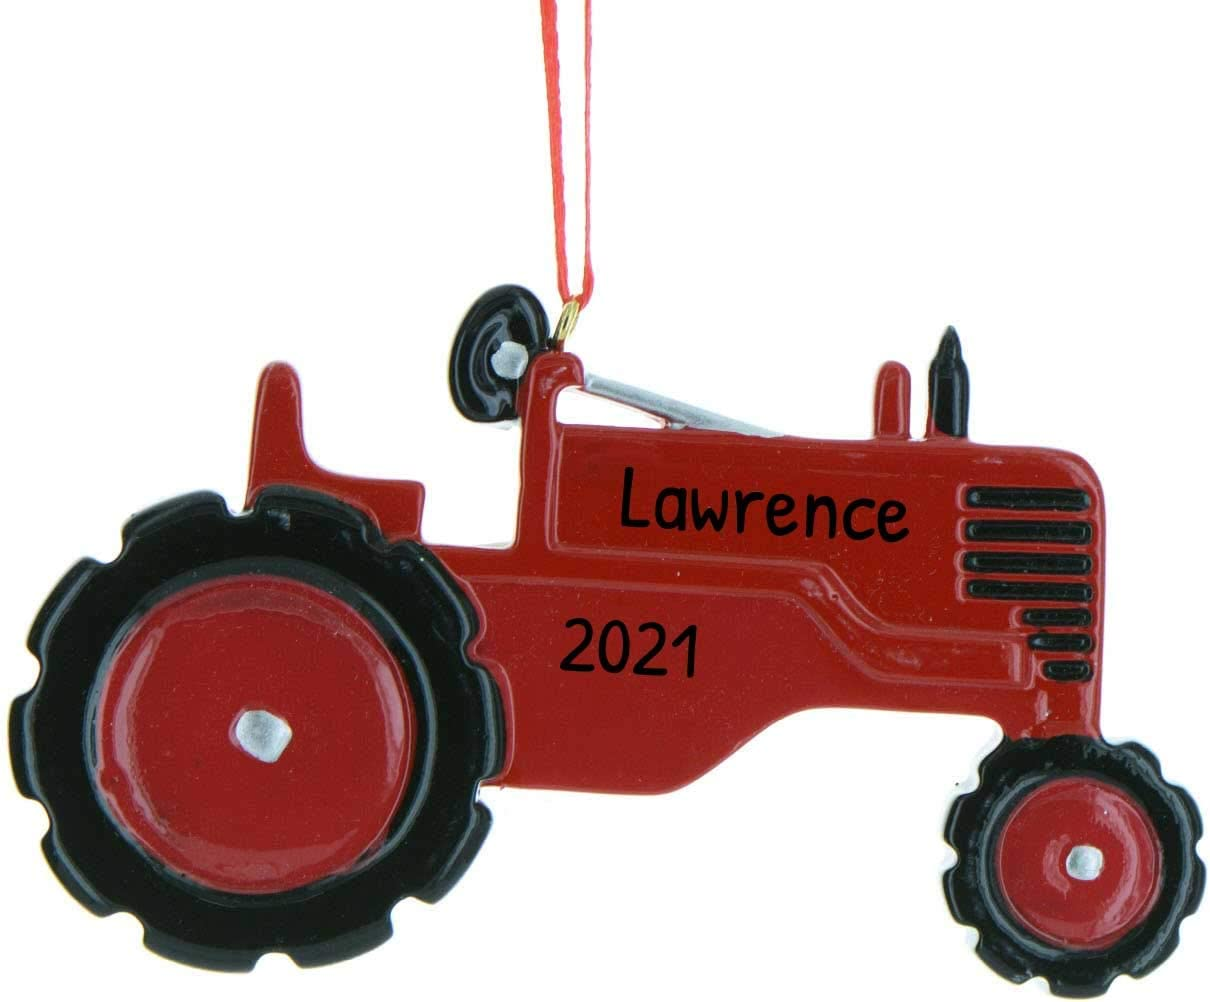 Road To Christmas  2020 Trailer Amazon.com: Personalized Red Tractor Christmas Tree Ornament 2020